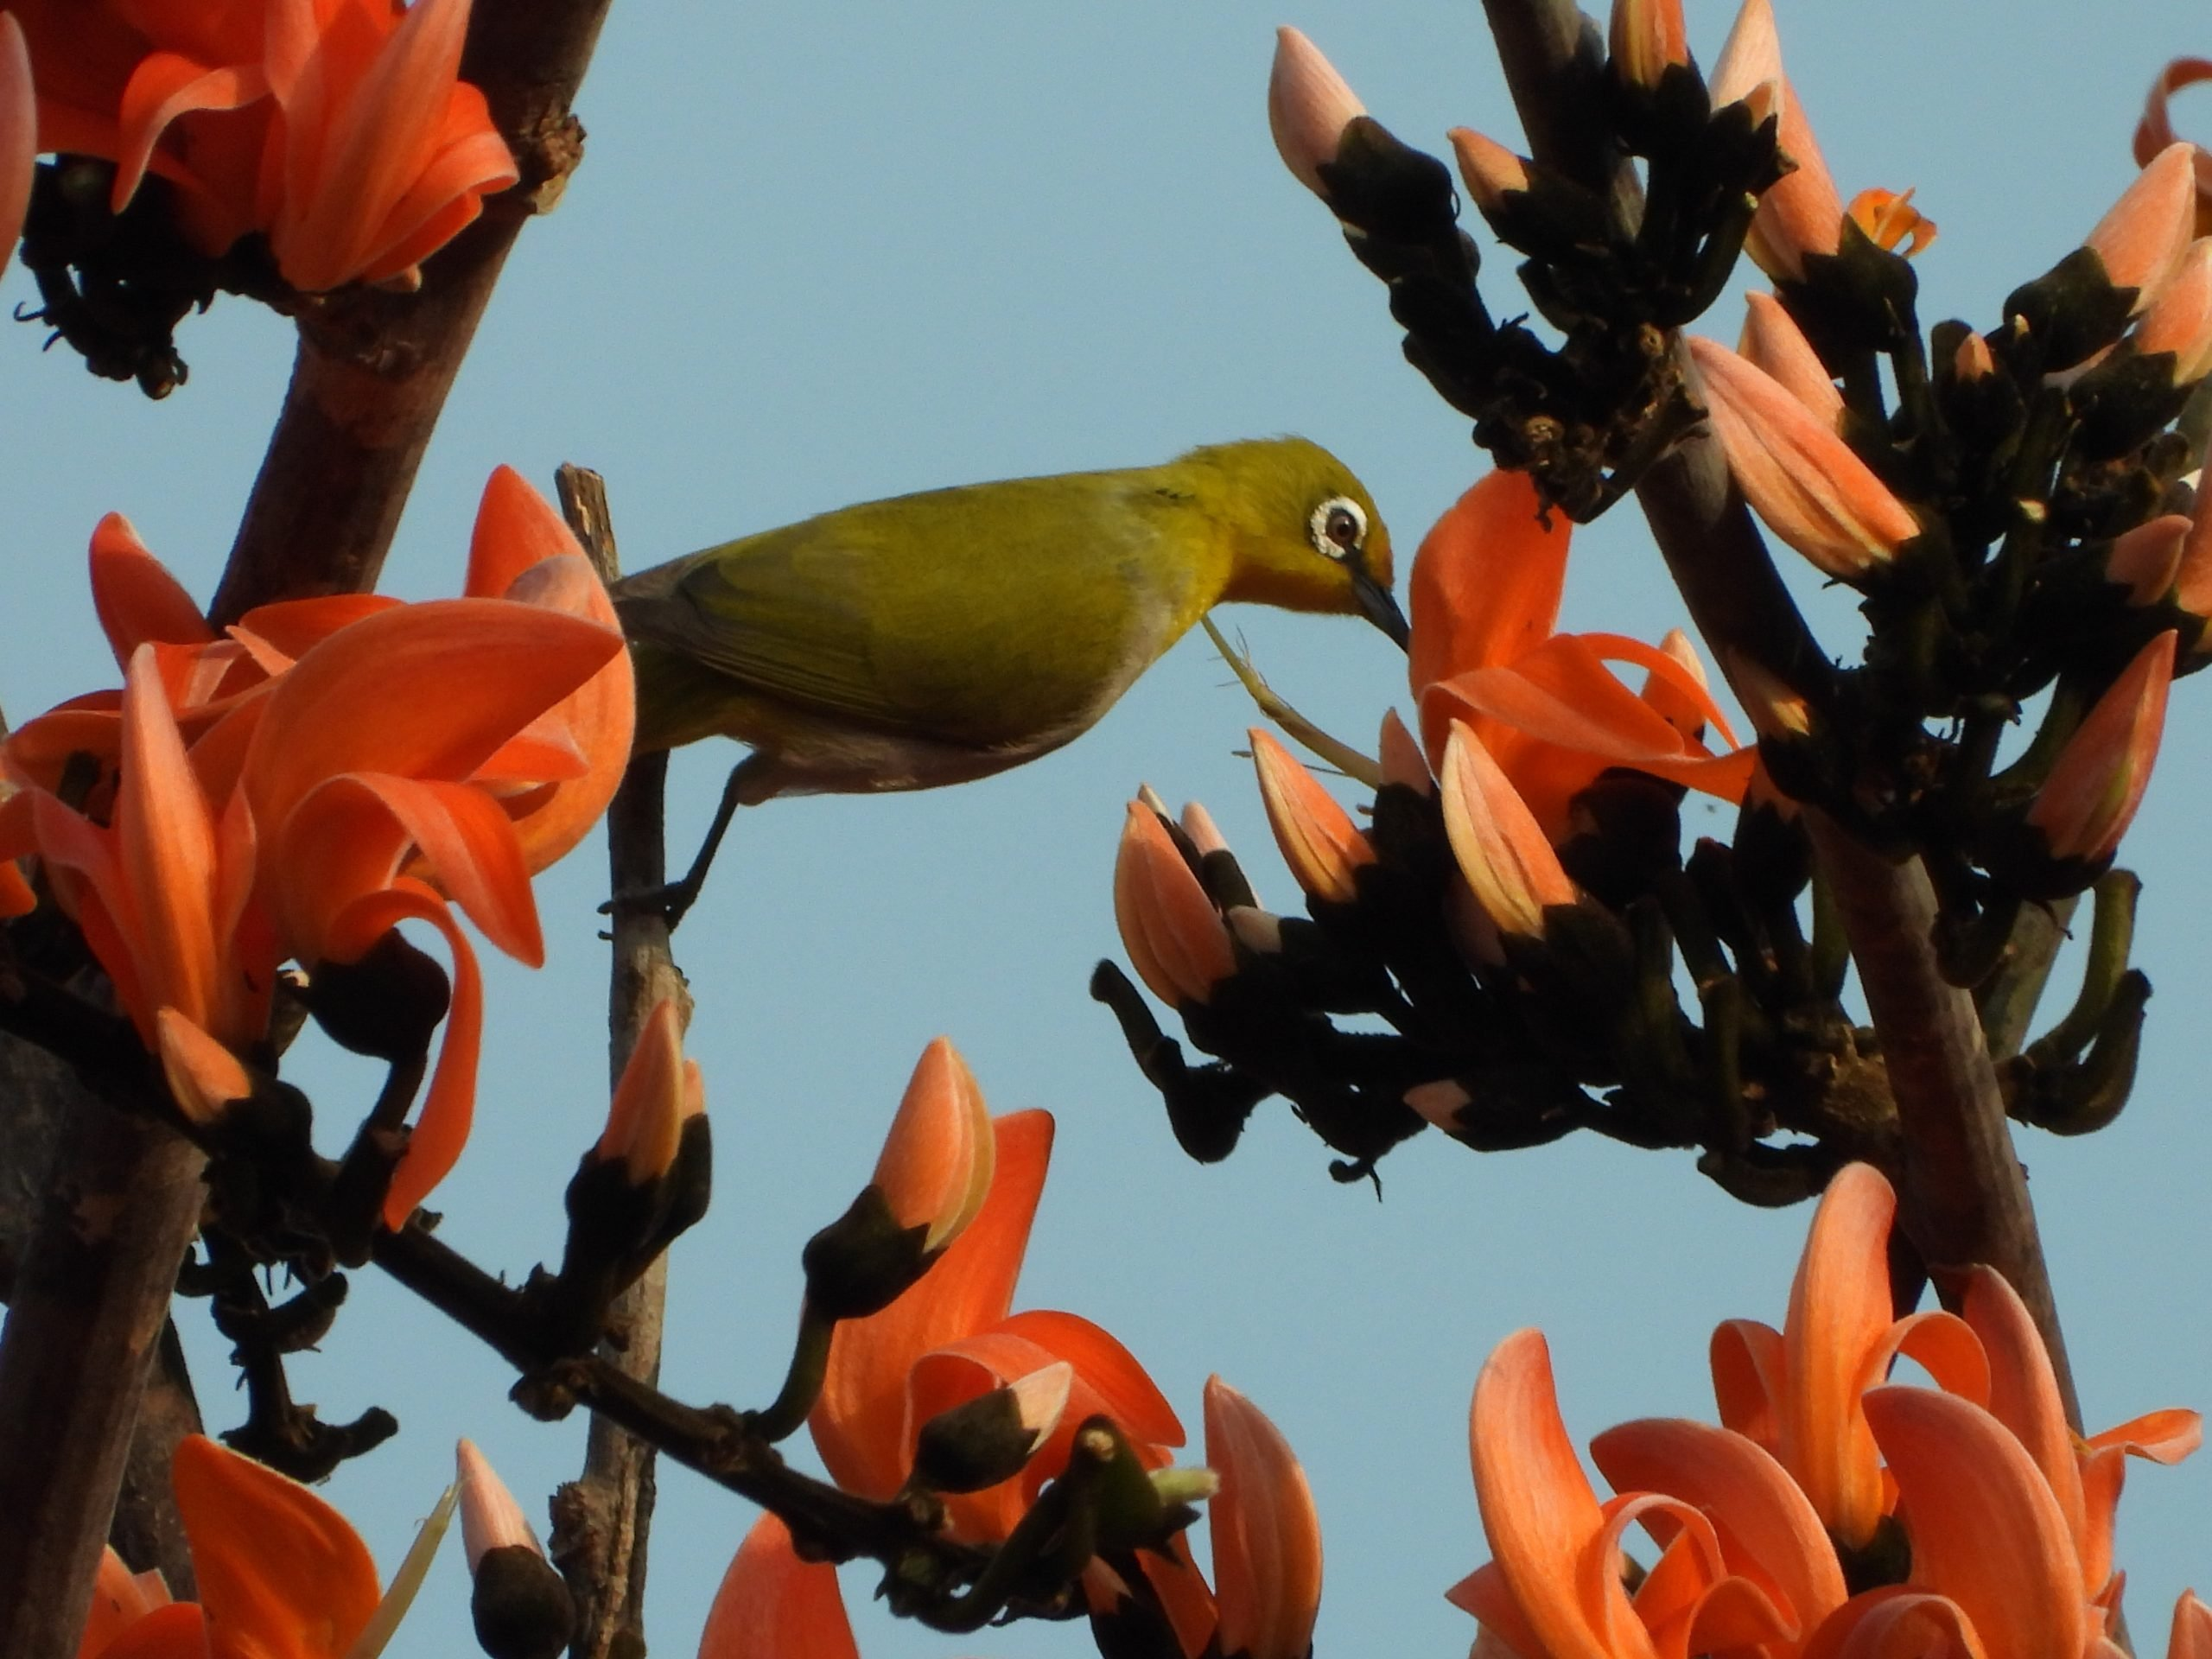 Bird on the flower plant